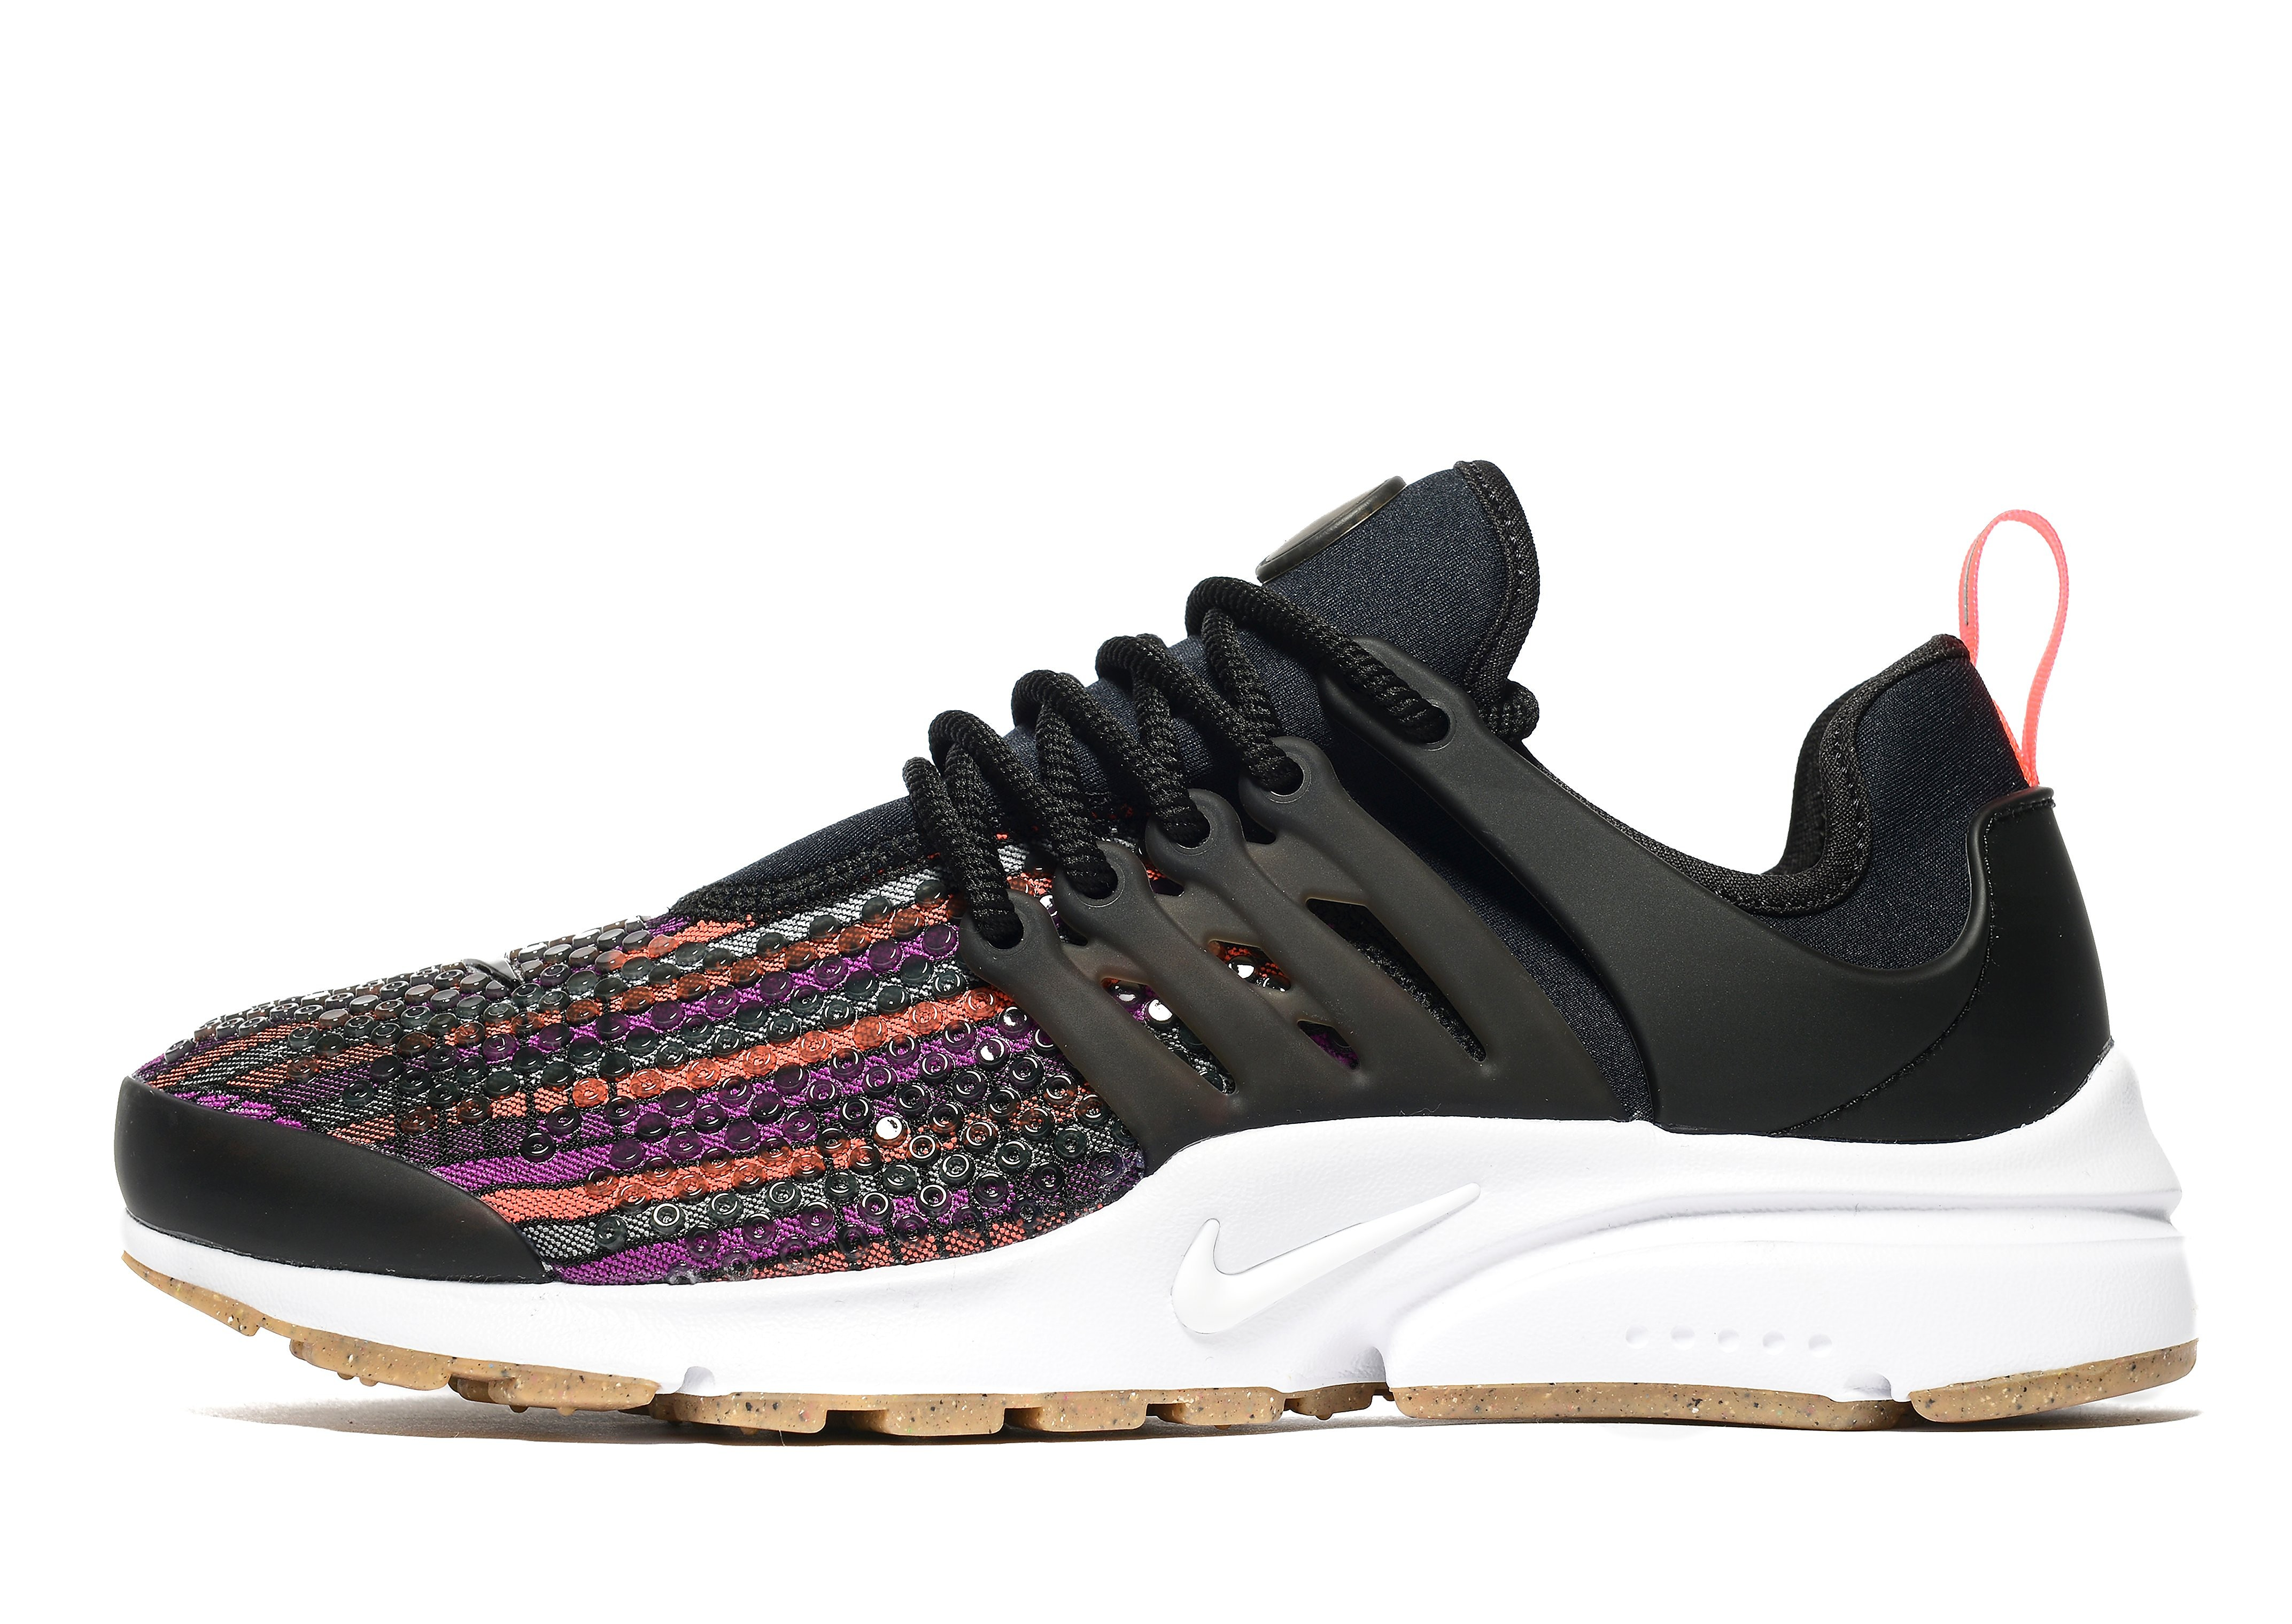 Nike Beautiful x Powerful Air Presto Jacquard